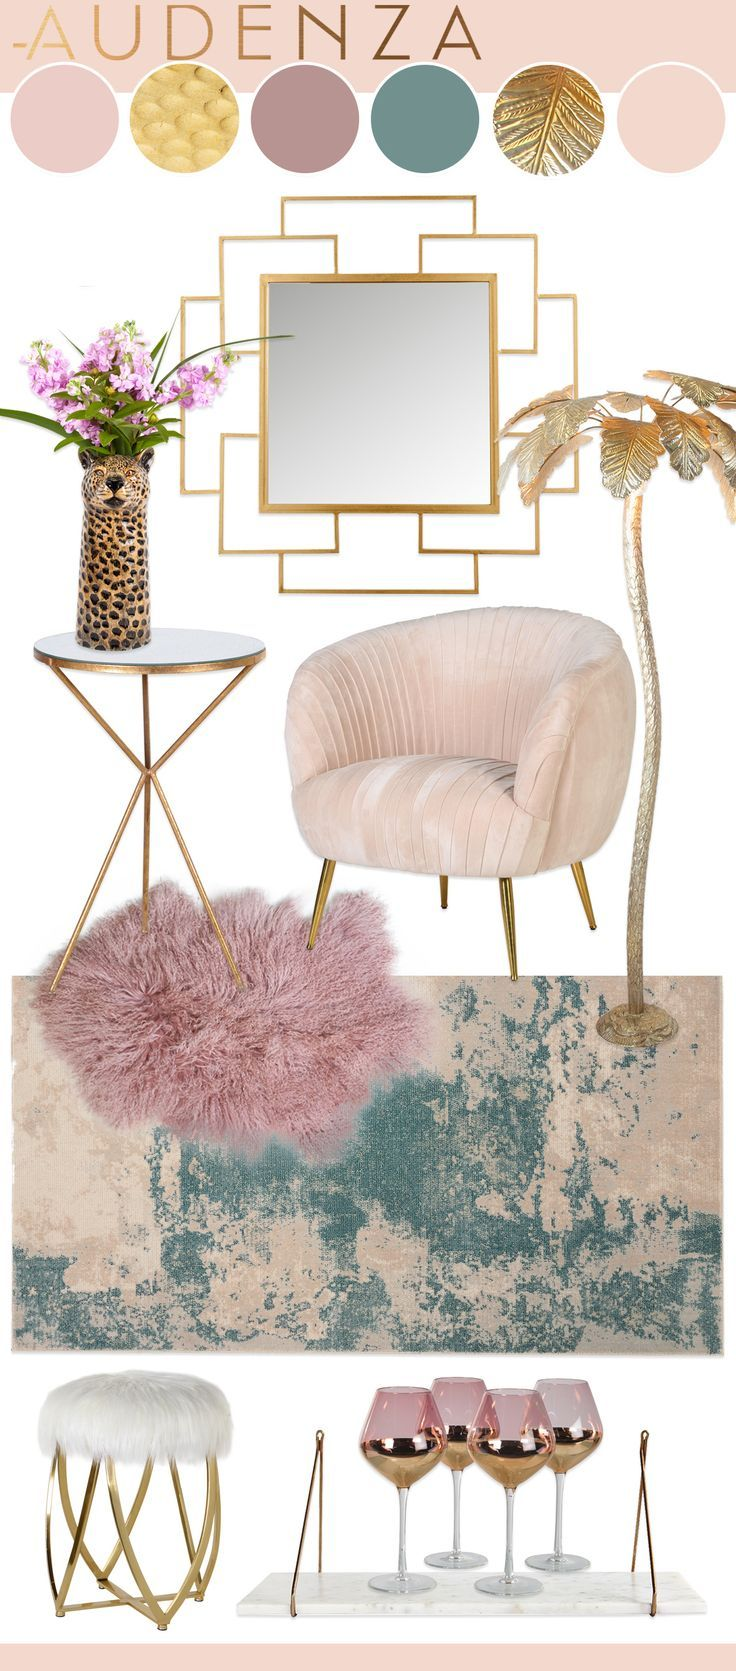 3 New Season Mood Board Ideas for a Super Stylish Home #moodboards